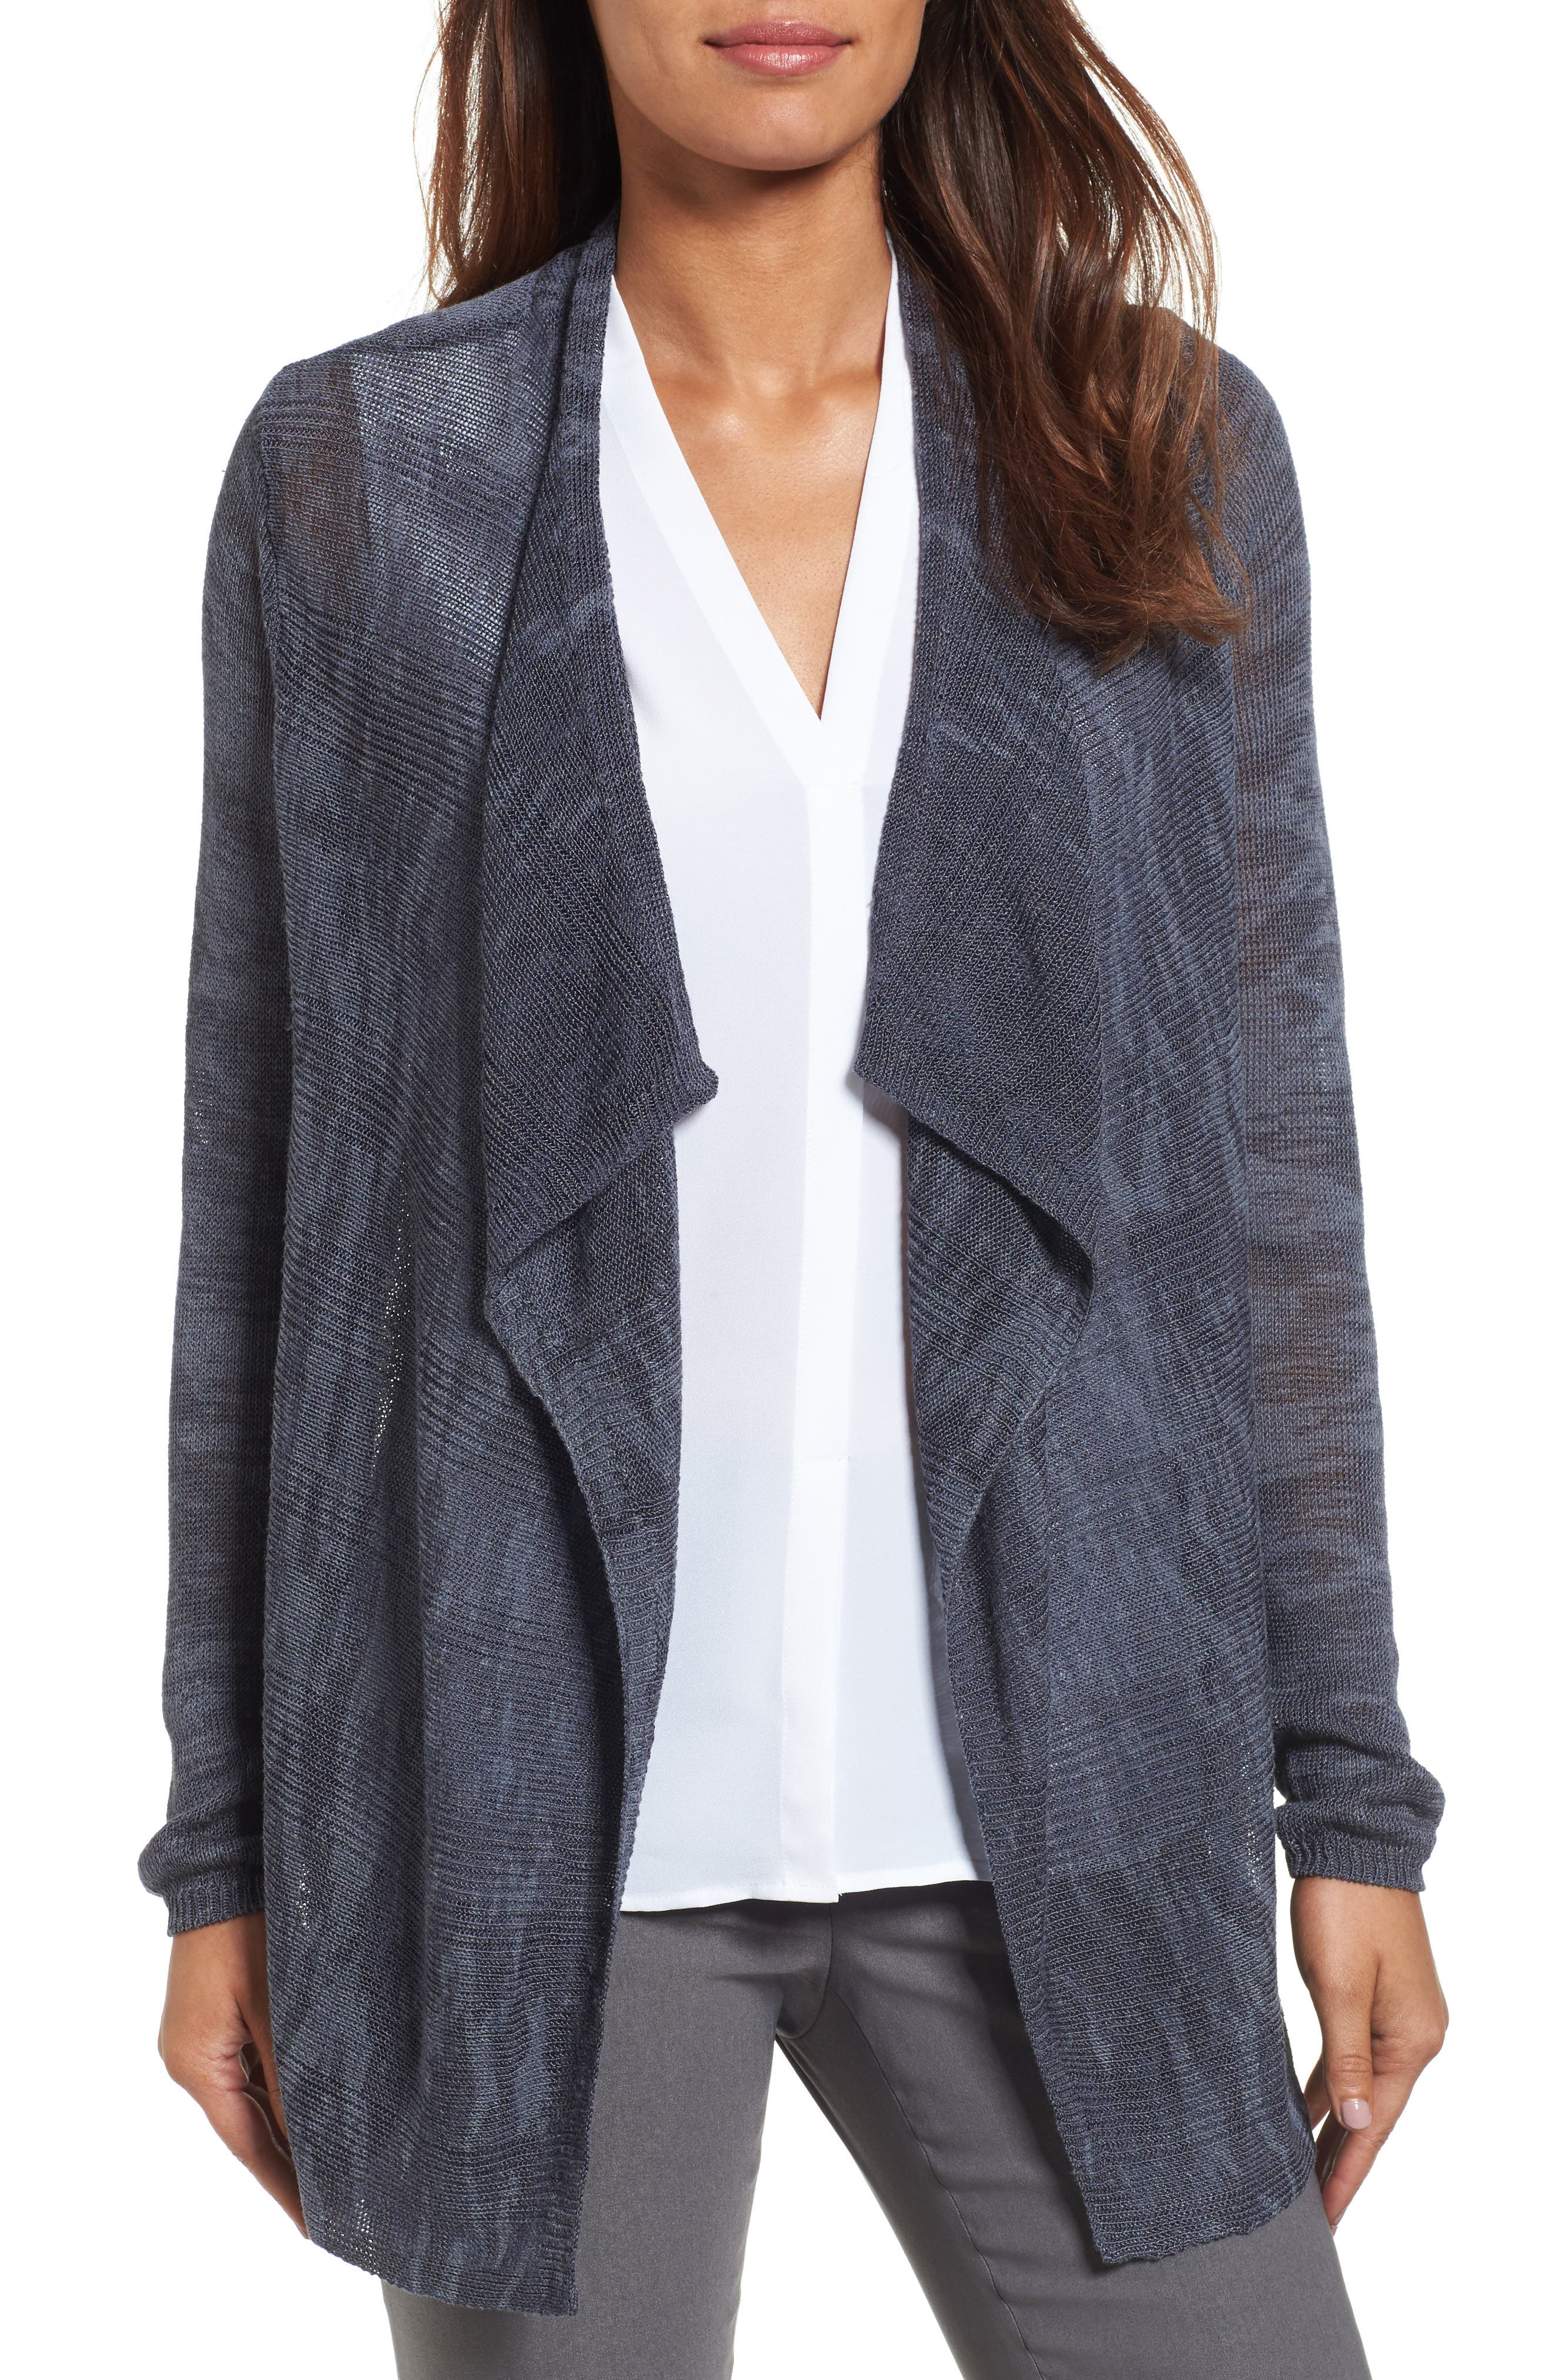 NIC+ZOE Nirvana Cardigan (Regular & Petite)